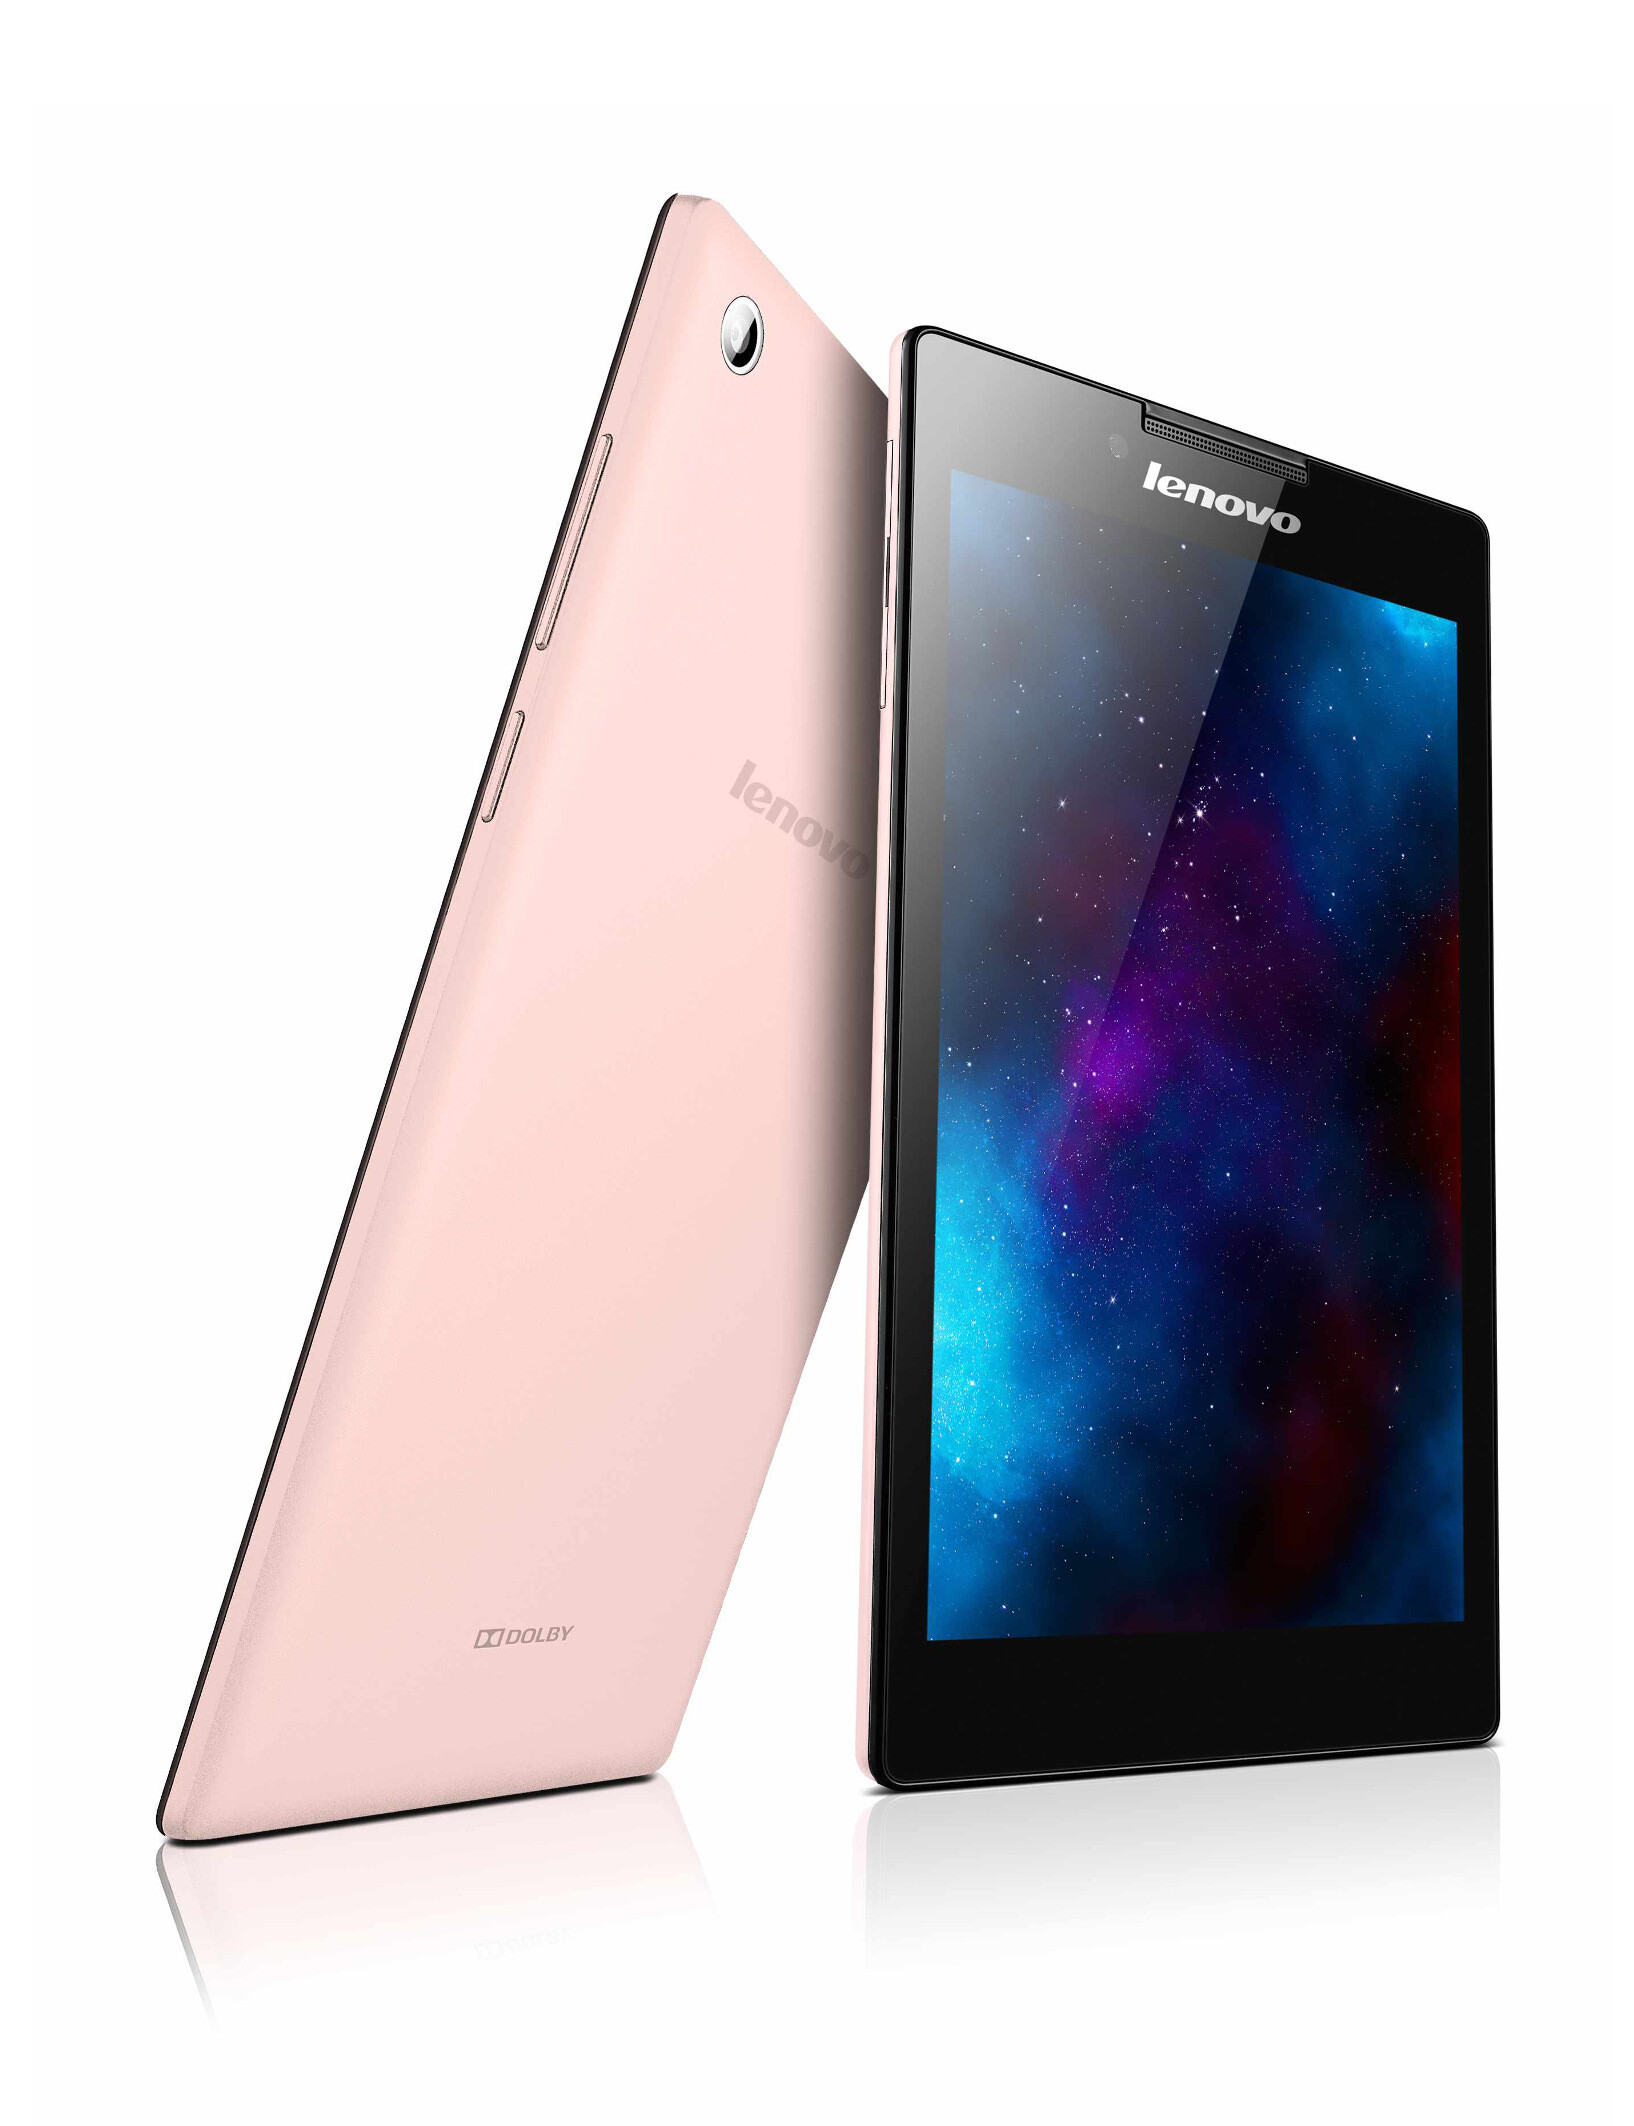 Lenovo Tab 2 A7 30 s Lenovo Tablet Latest Version Best Picture Ccimage